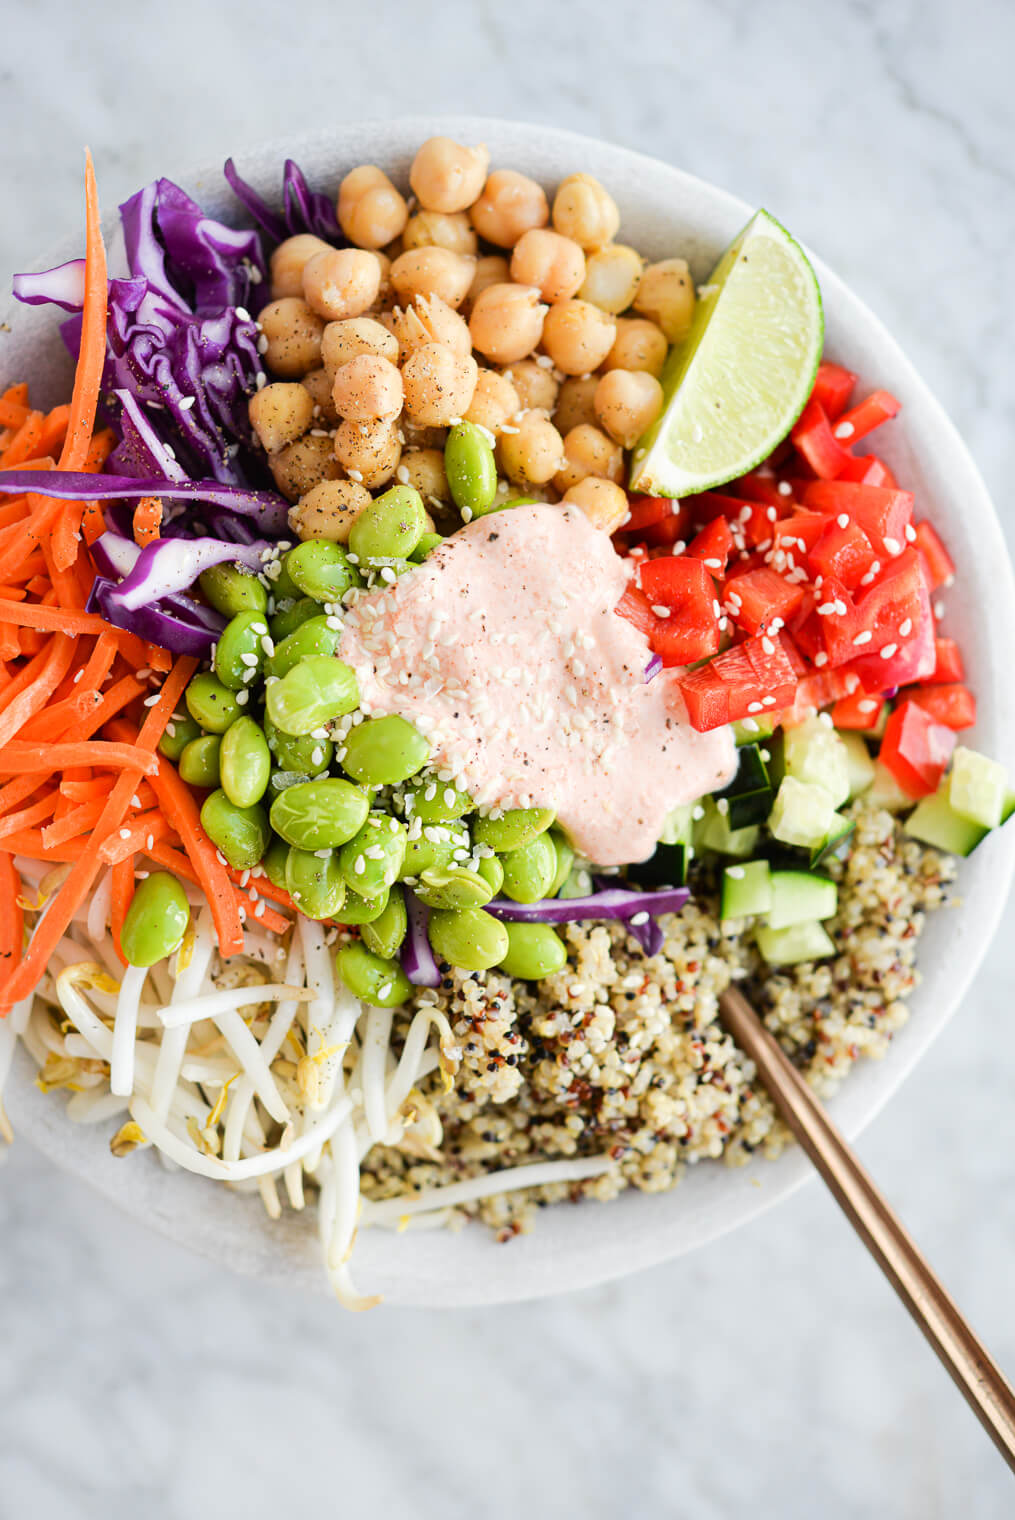 a close up of a thai red curry buddha bowl filled with quinoa, colorful, raw veggies, and a dollop of creamy yogurt red curry sauce on top, all sitting on a marble surface